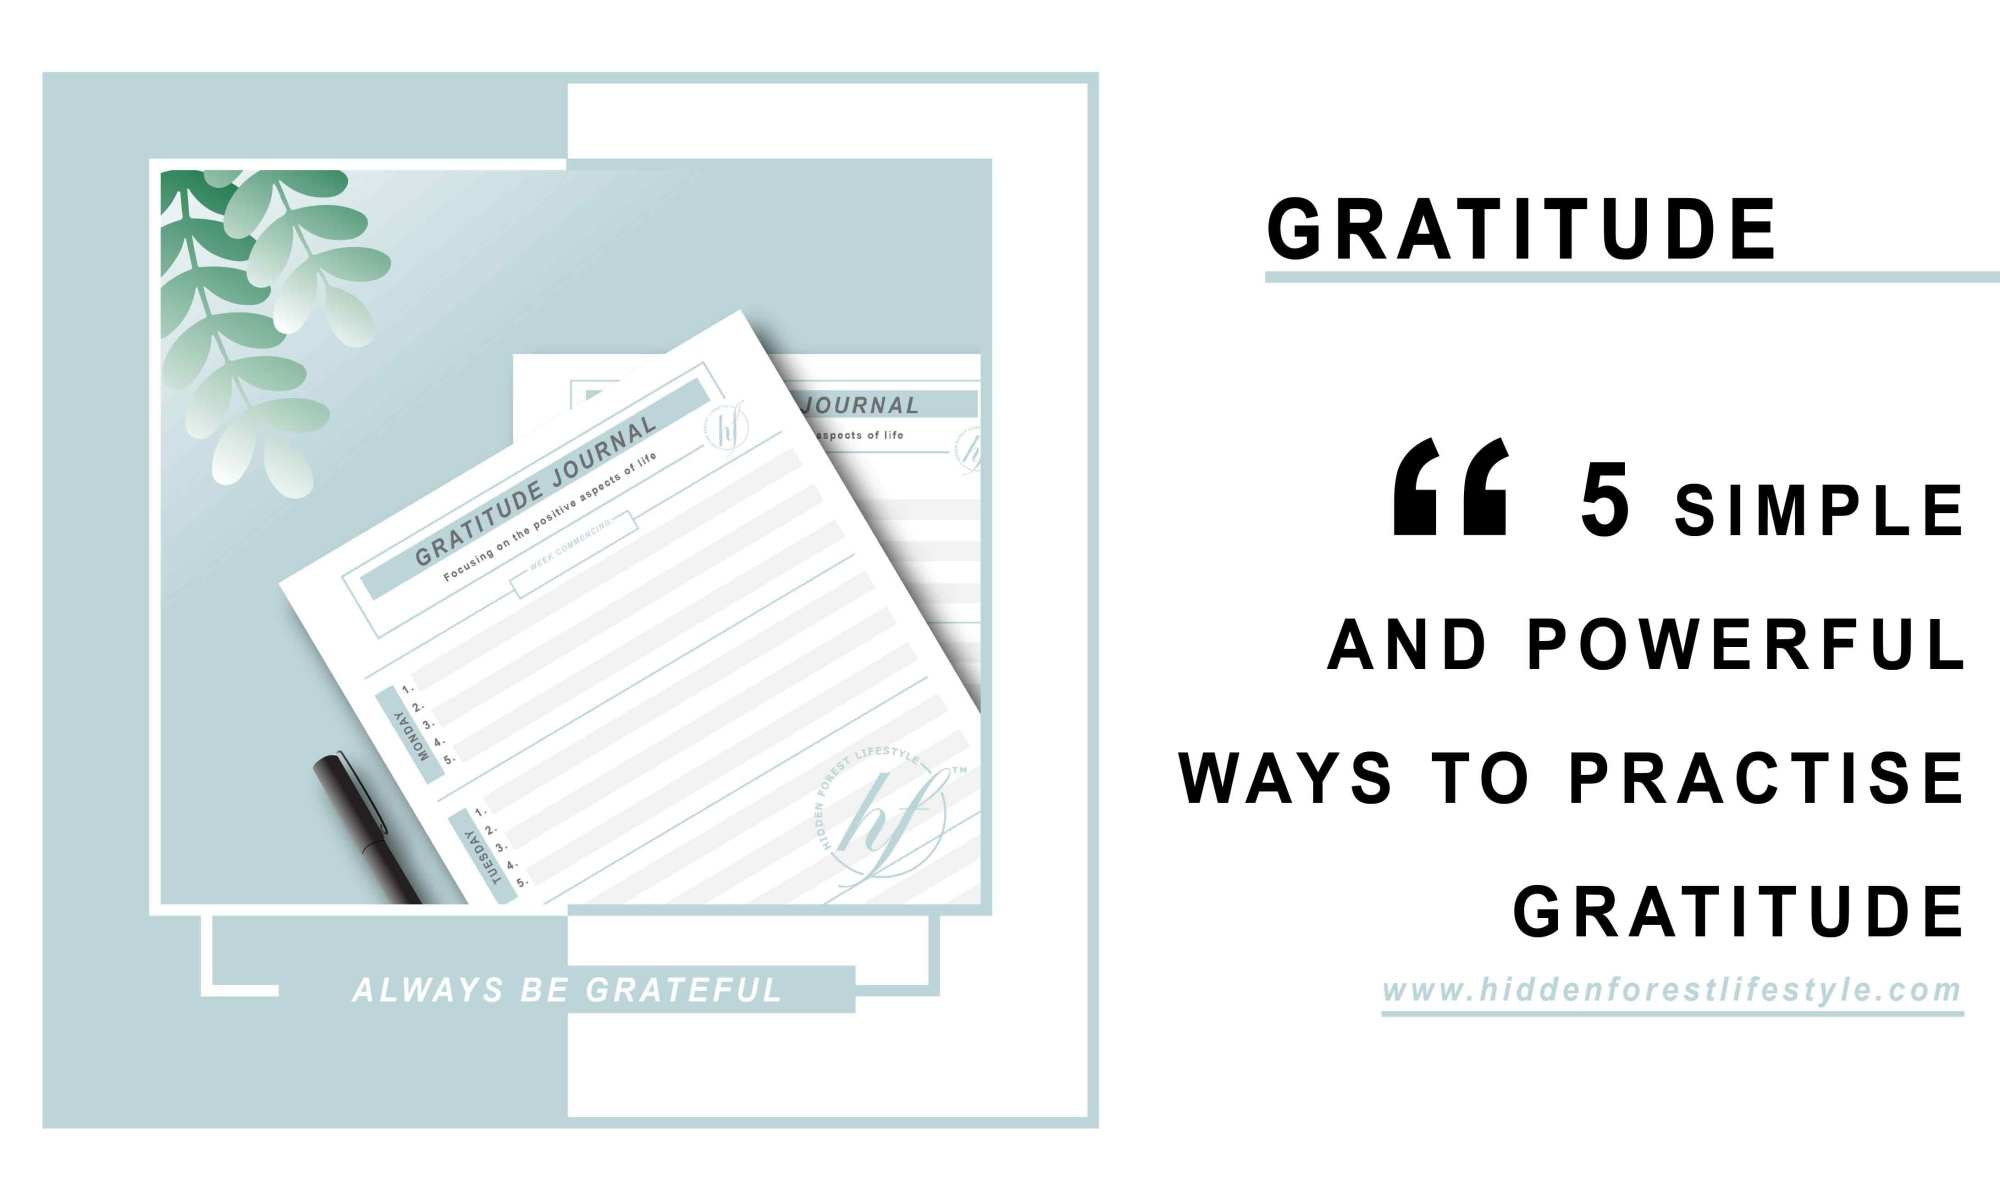 5 SIMPLE AND POWERFUL WAYS TO PRACTISE GRATITUDE